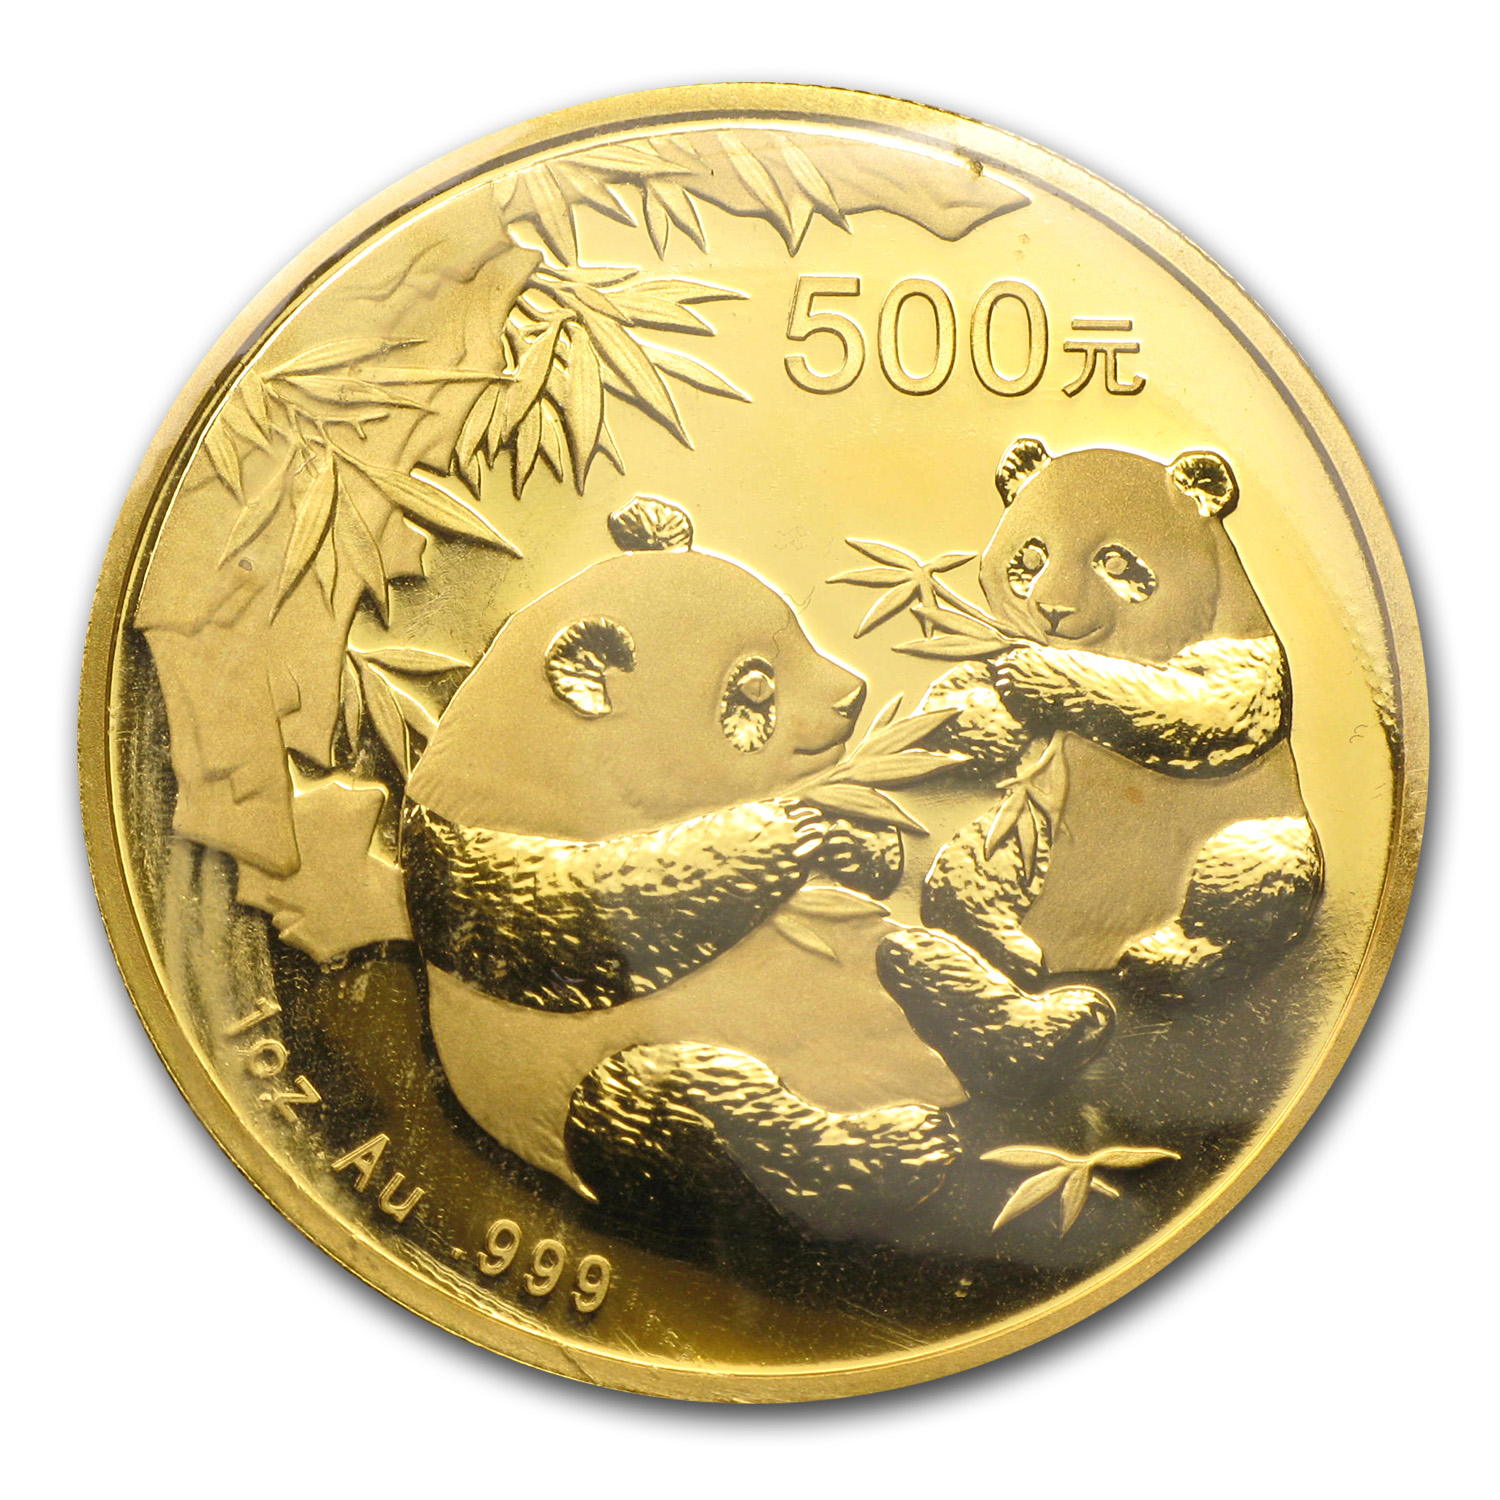 2006 China 1 oz Gold Panda BU (Sealed)